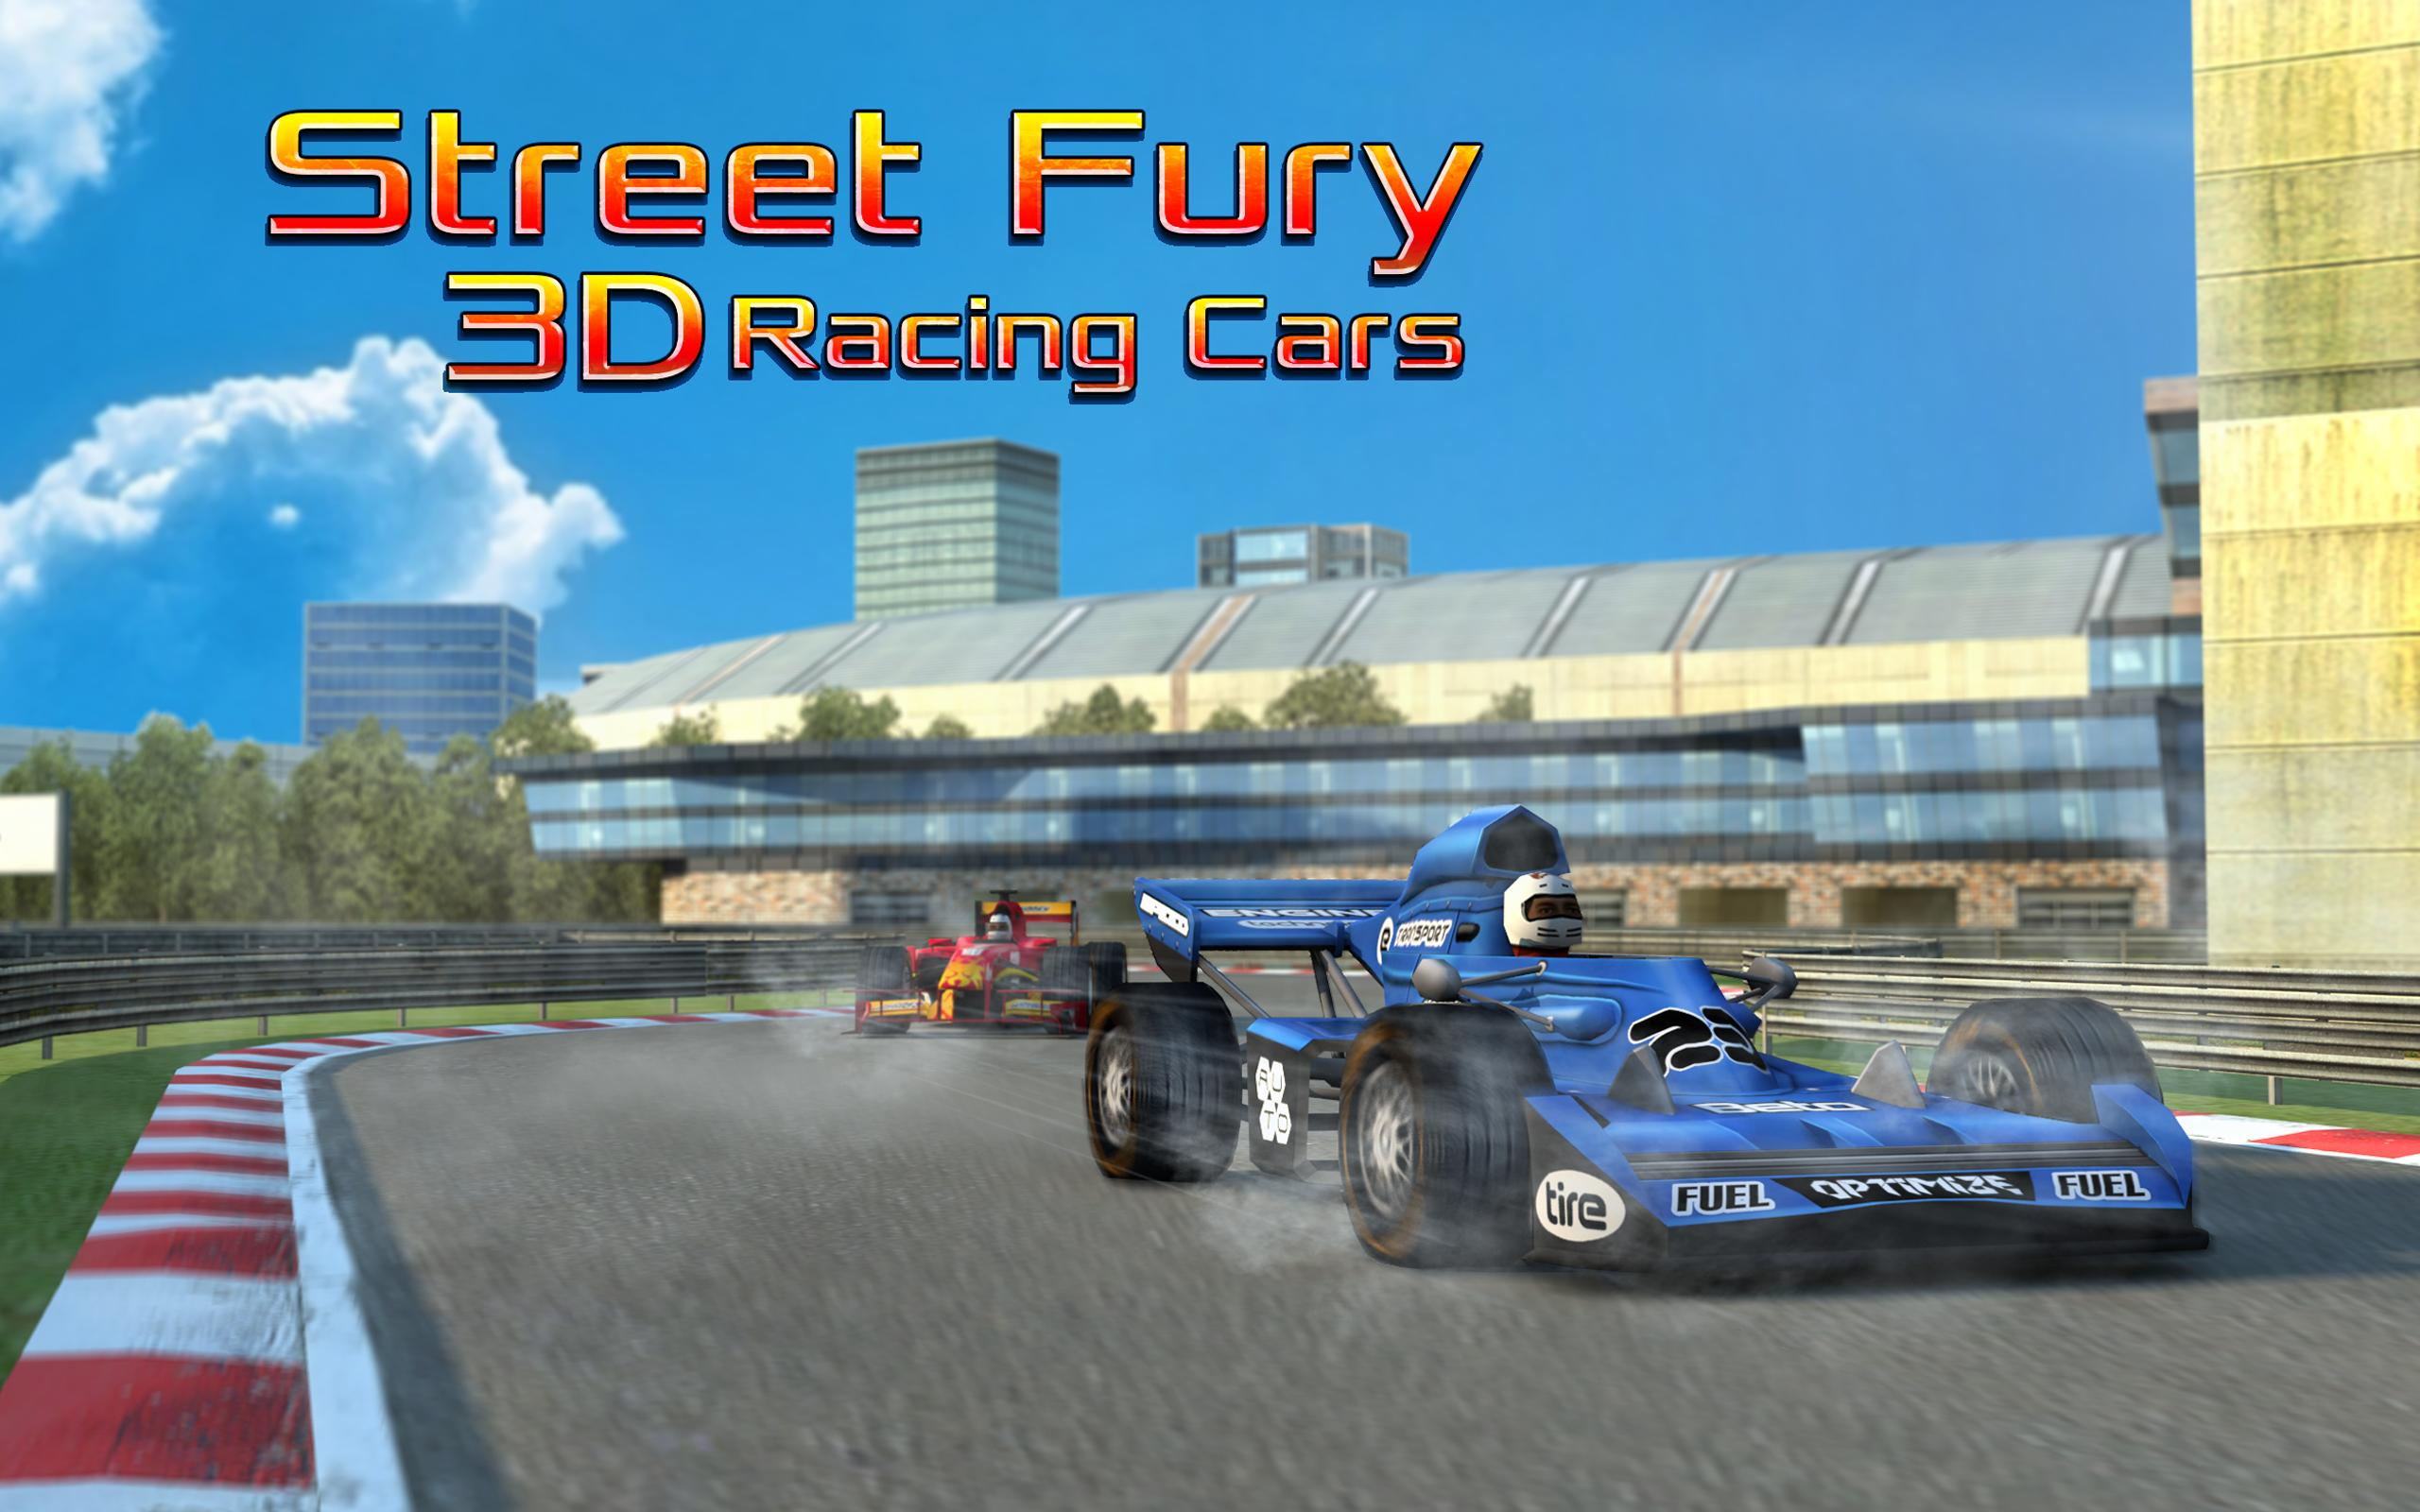 Street Fury: 3D Racing Cars for Android - APK Download